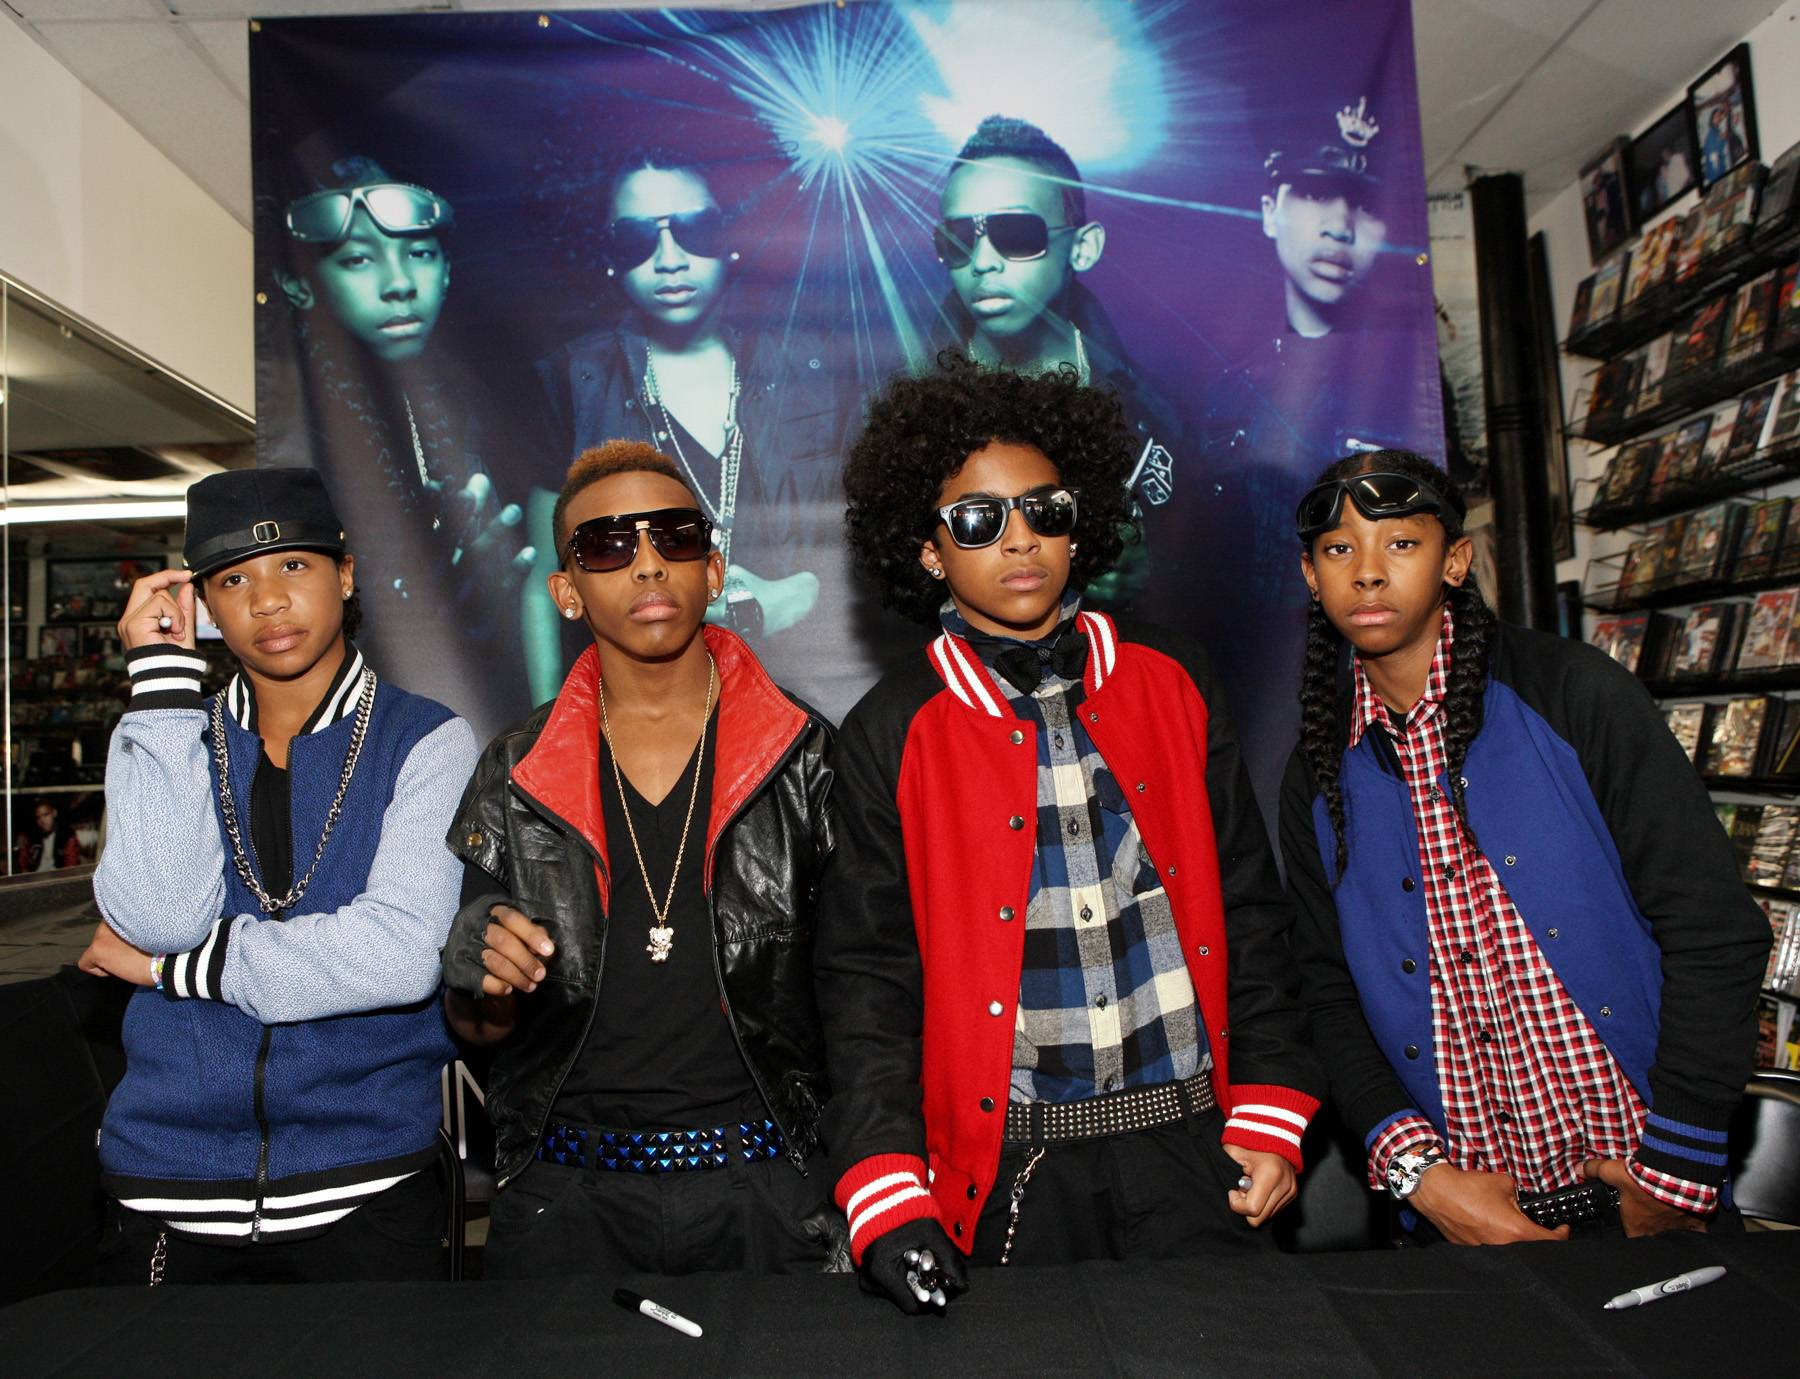 6. They're YouTube Sensations - They?re killing it on YouTube! Mindless Behavior's music videos have over 30 million views combined.(Photo: Bennett Raglin/Getty Images)